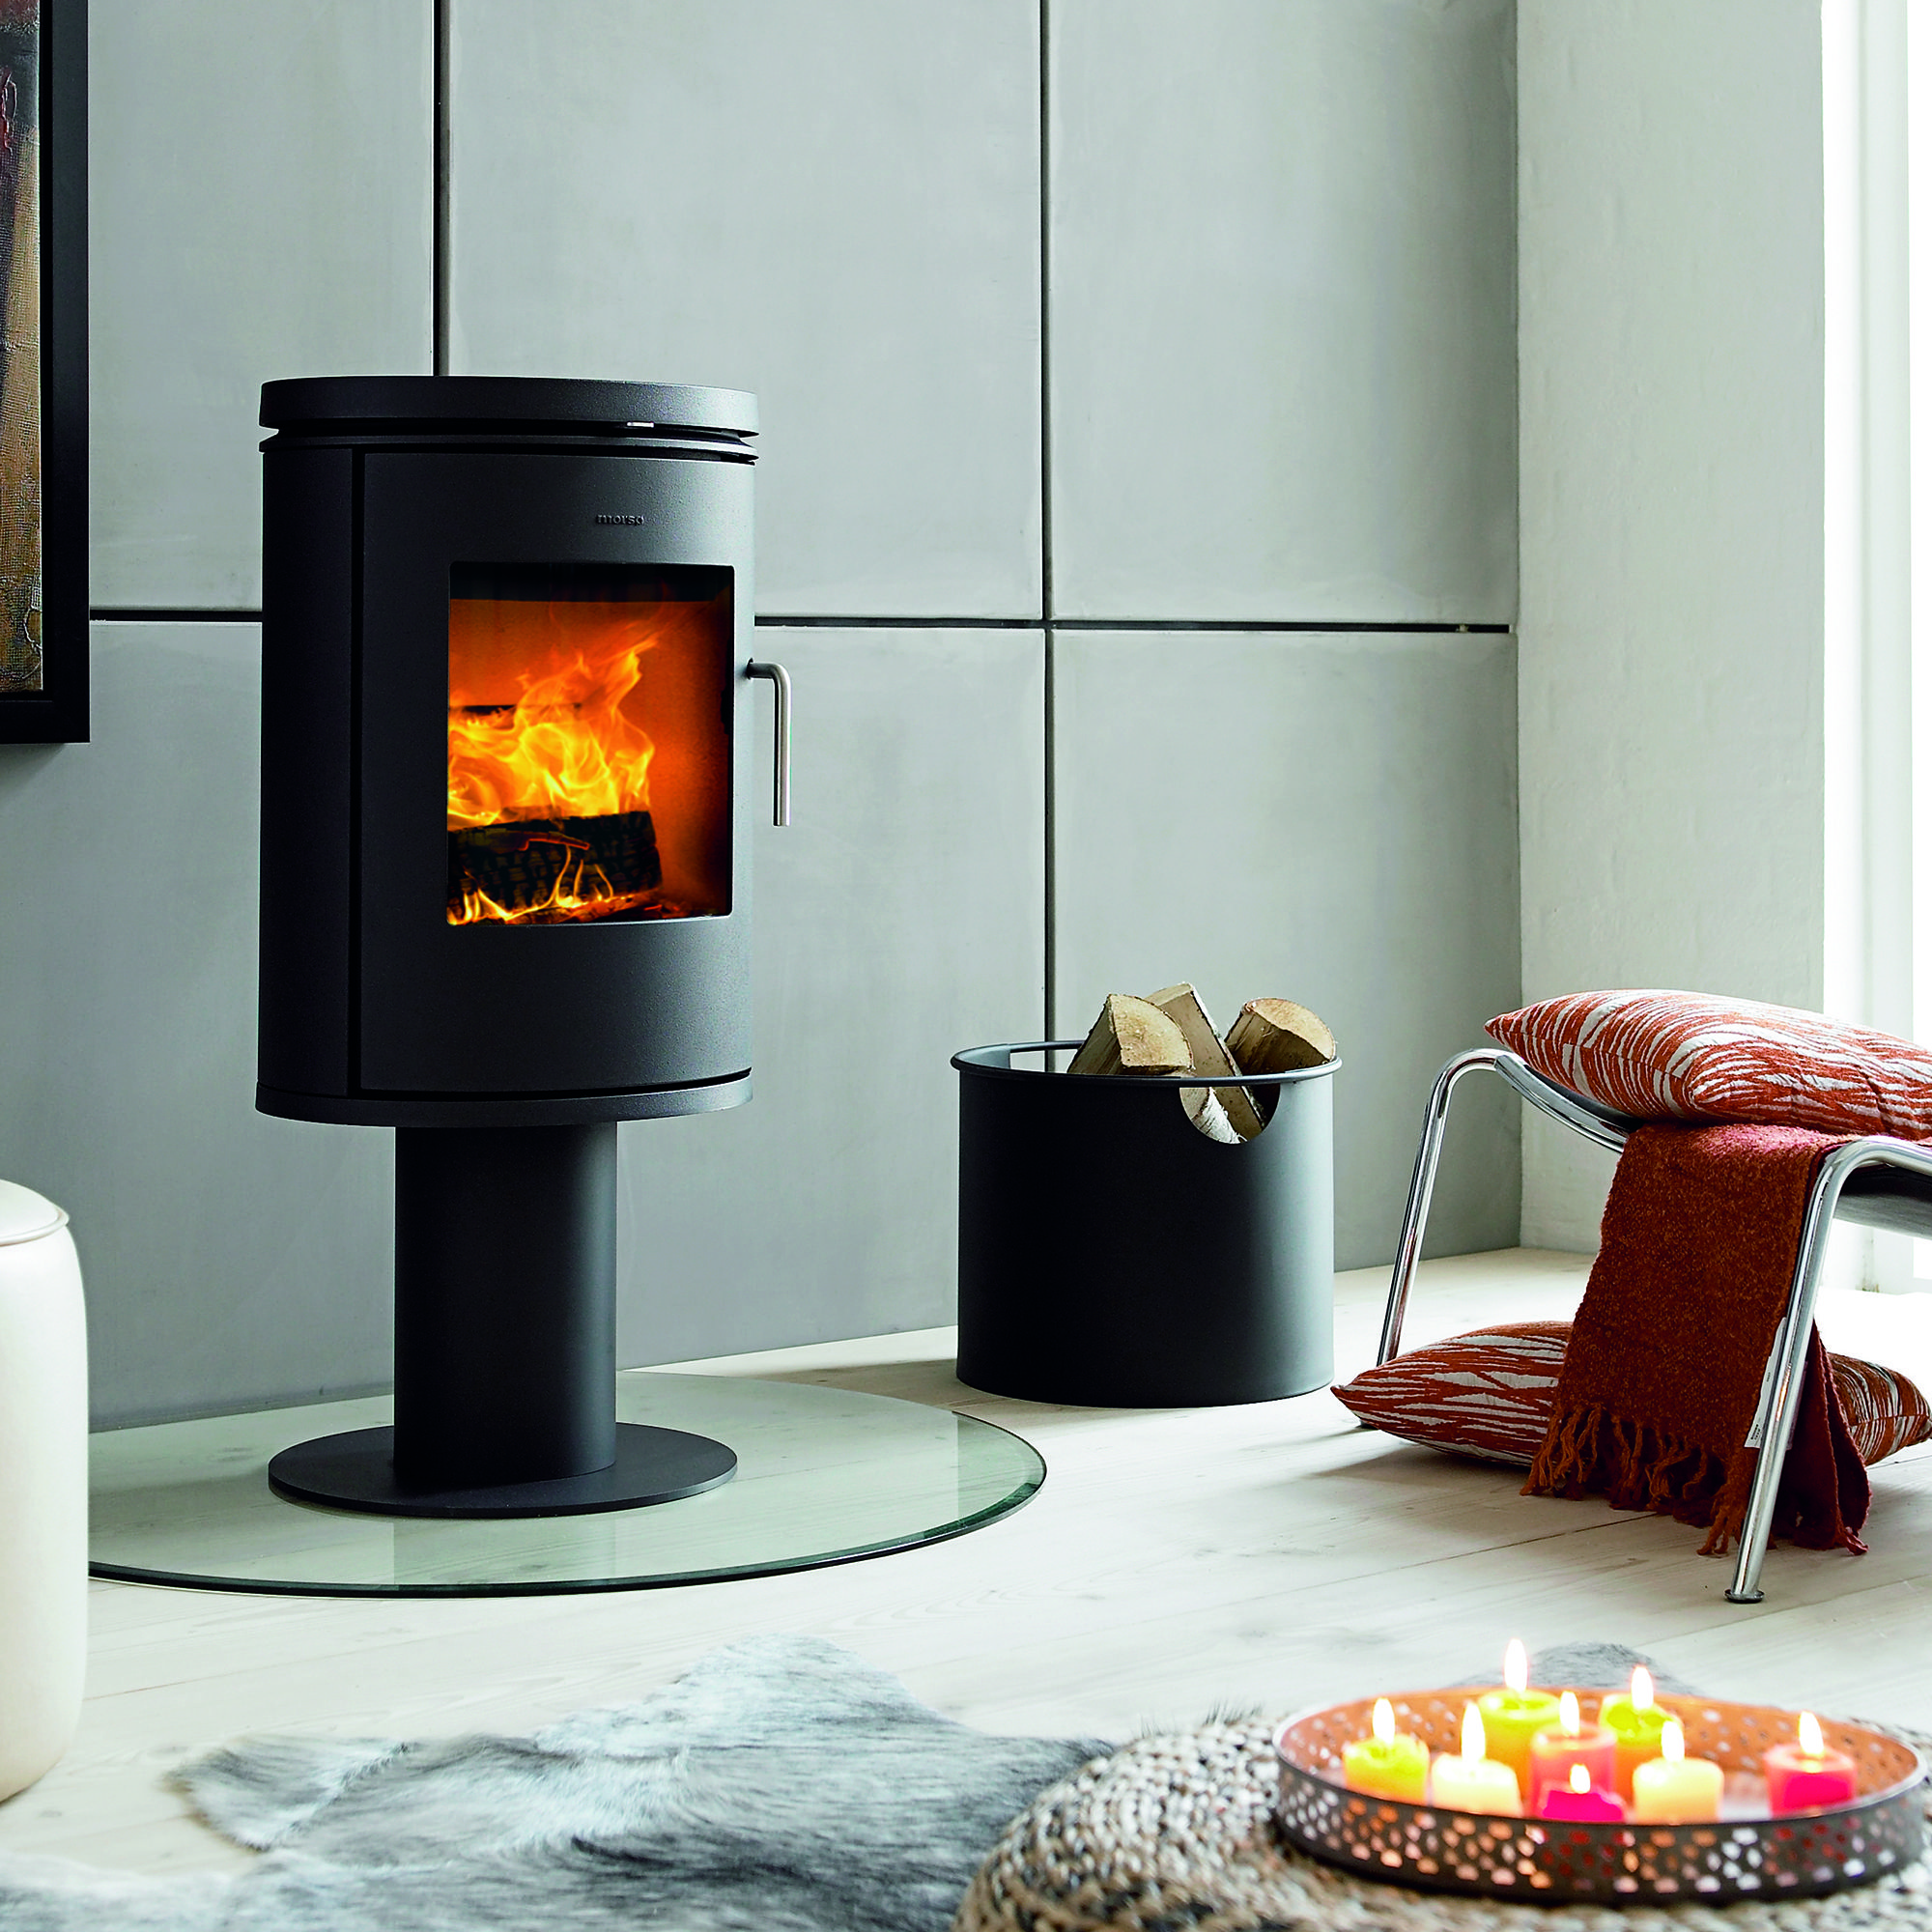 Morsø 6148 Wood Burning Stove øsoliving Wood Heater Stove Wood Burning Stove